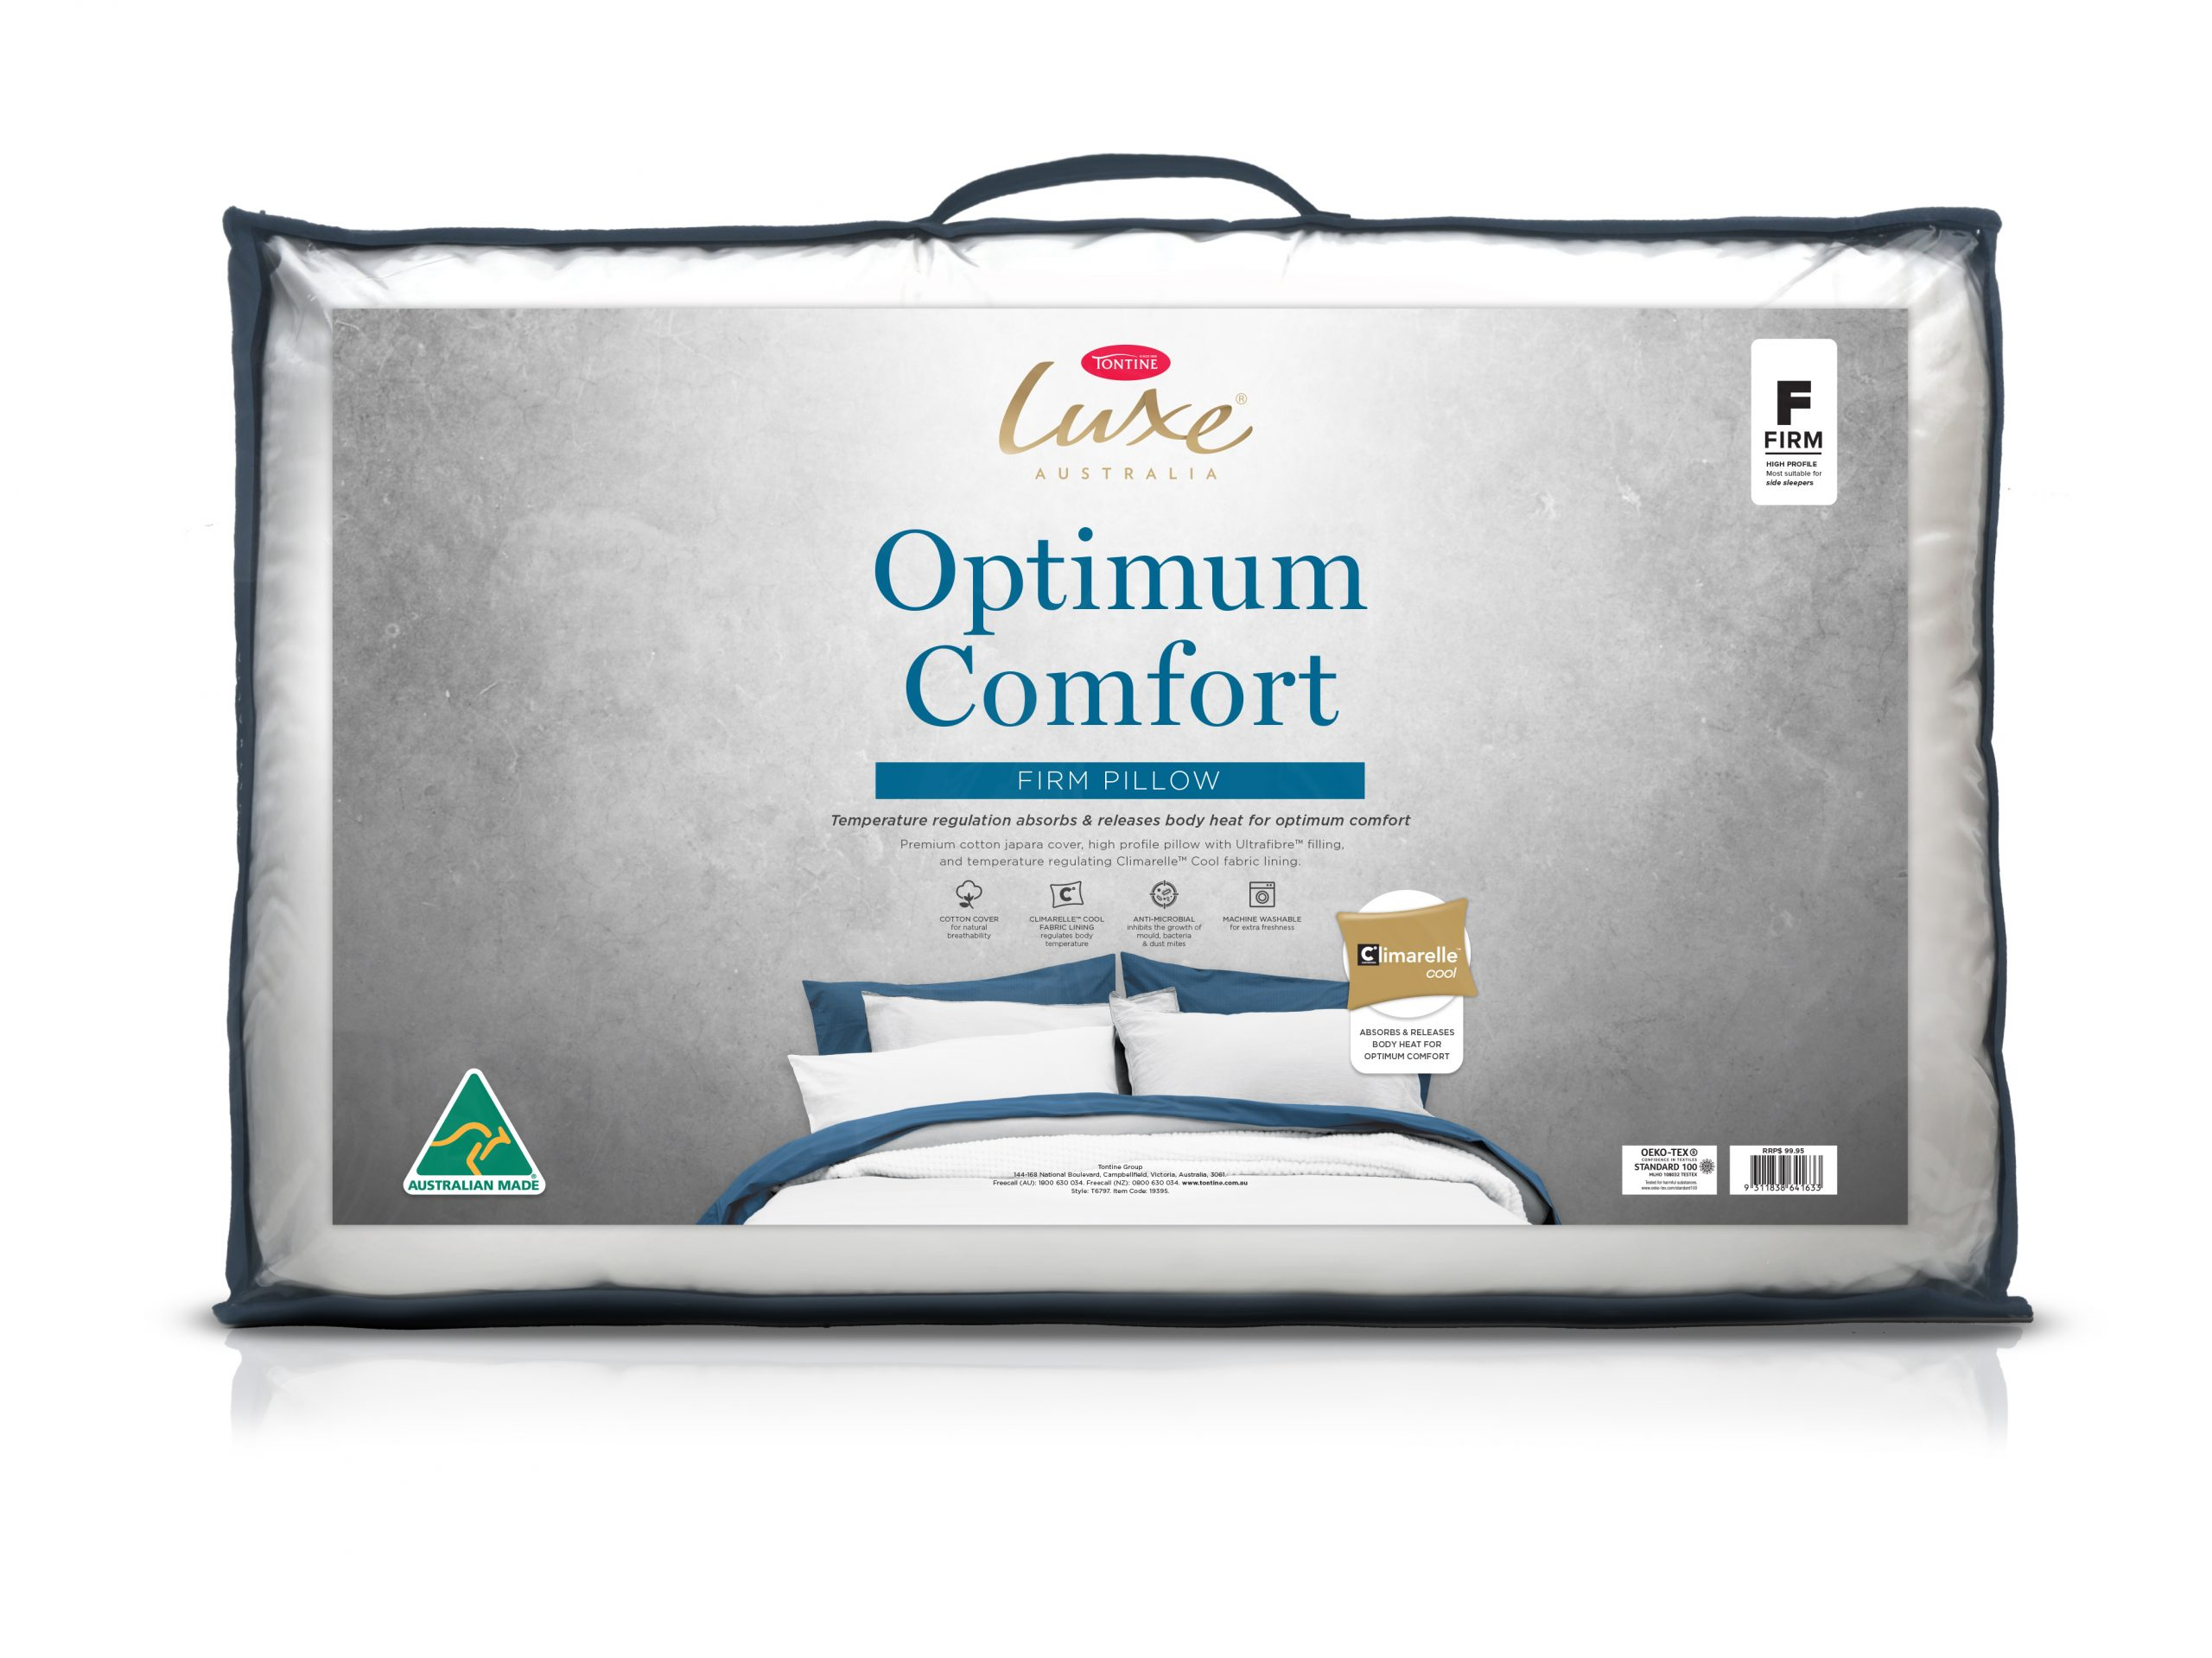 Tontine Luxe Optimum Comfort Temperature Control Firm Pillow